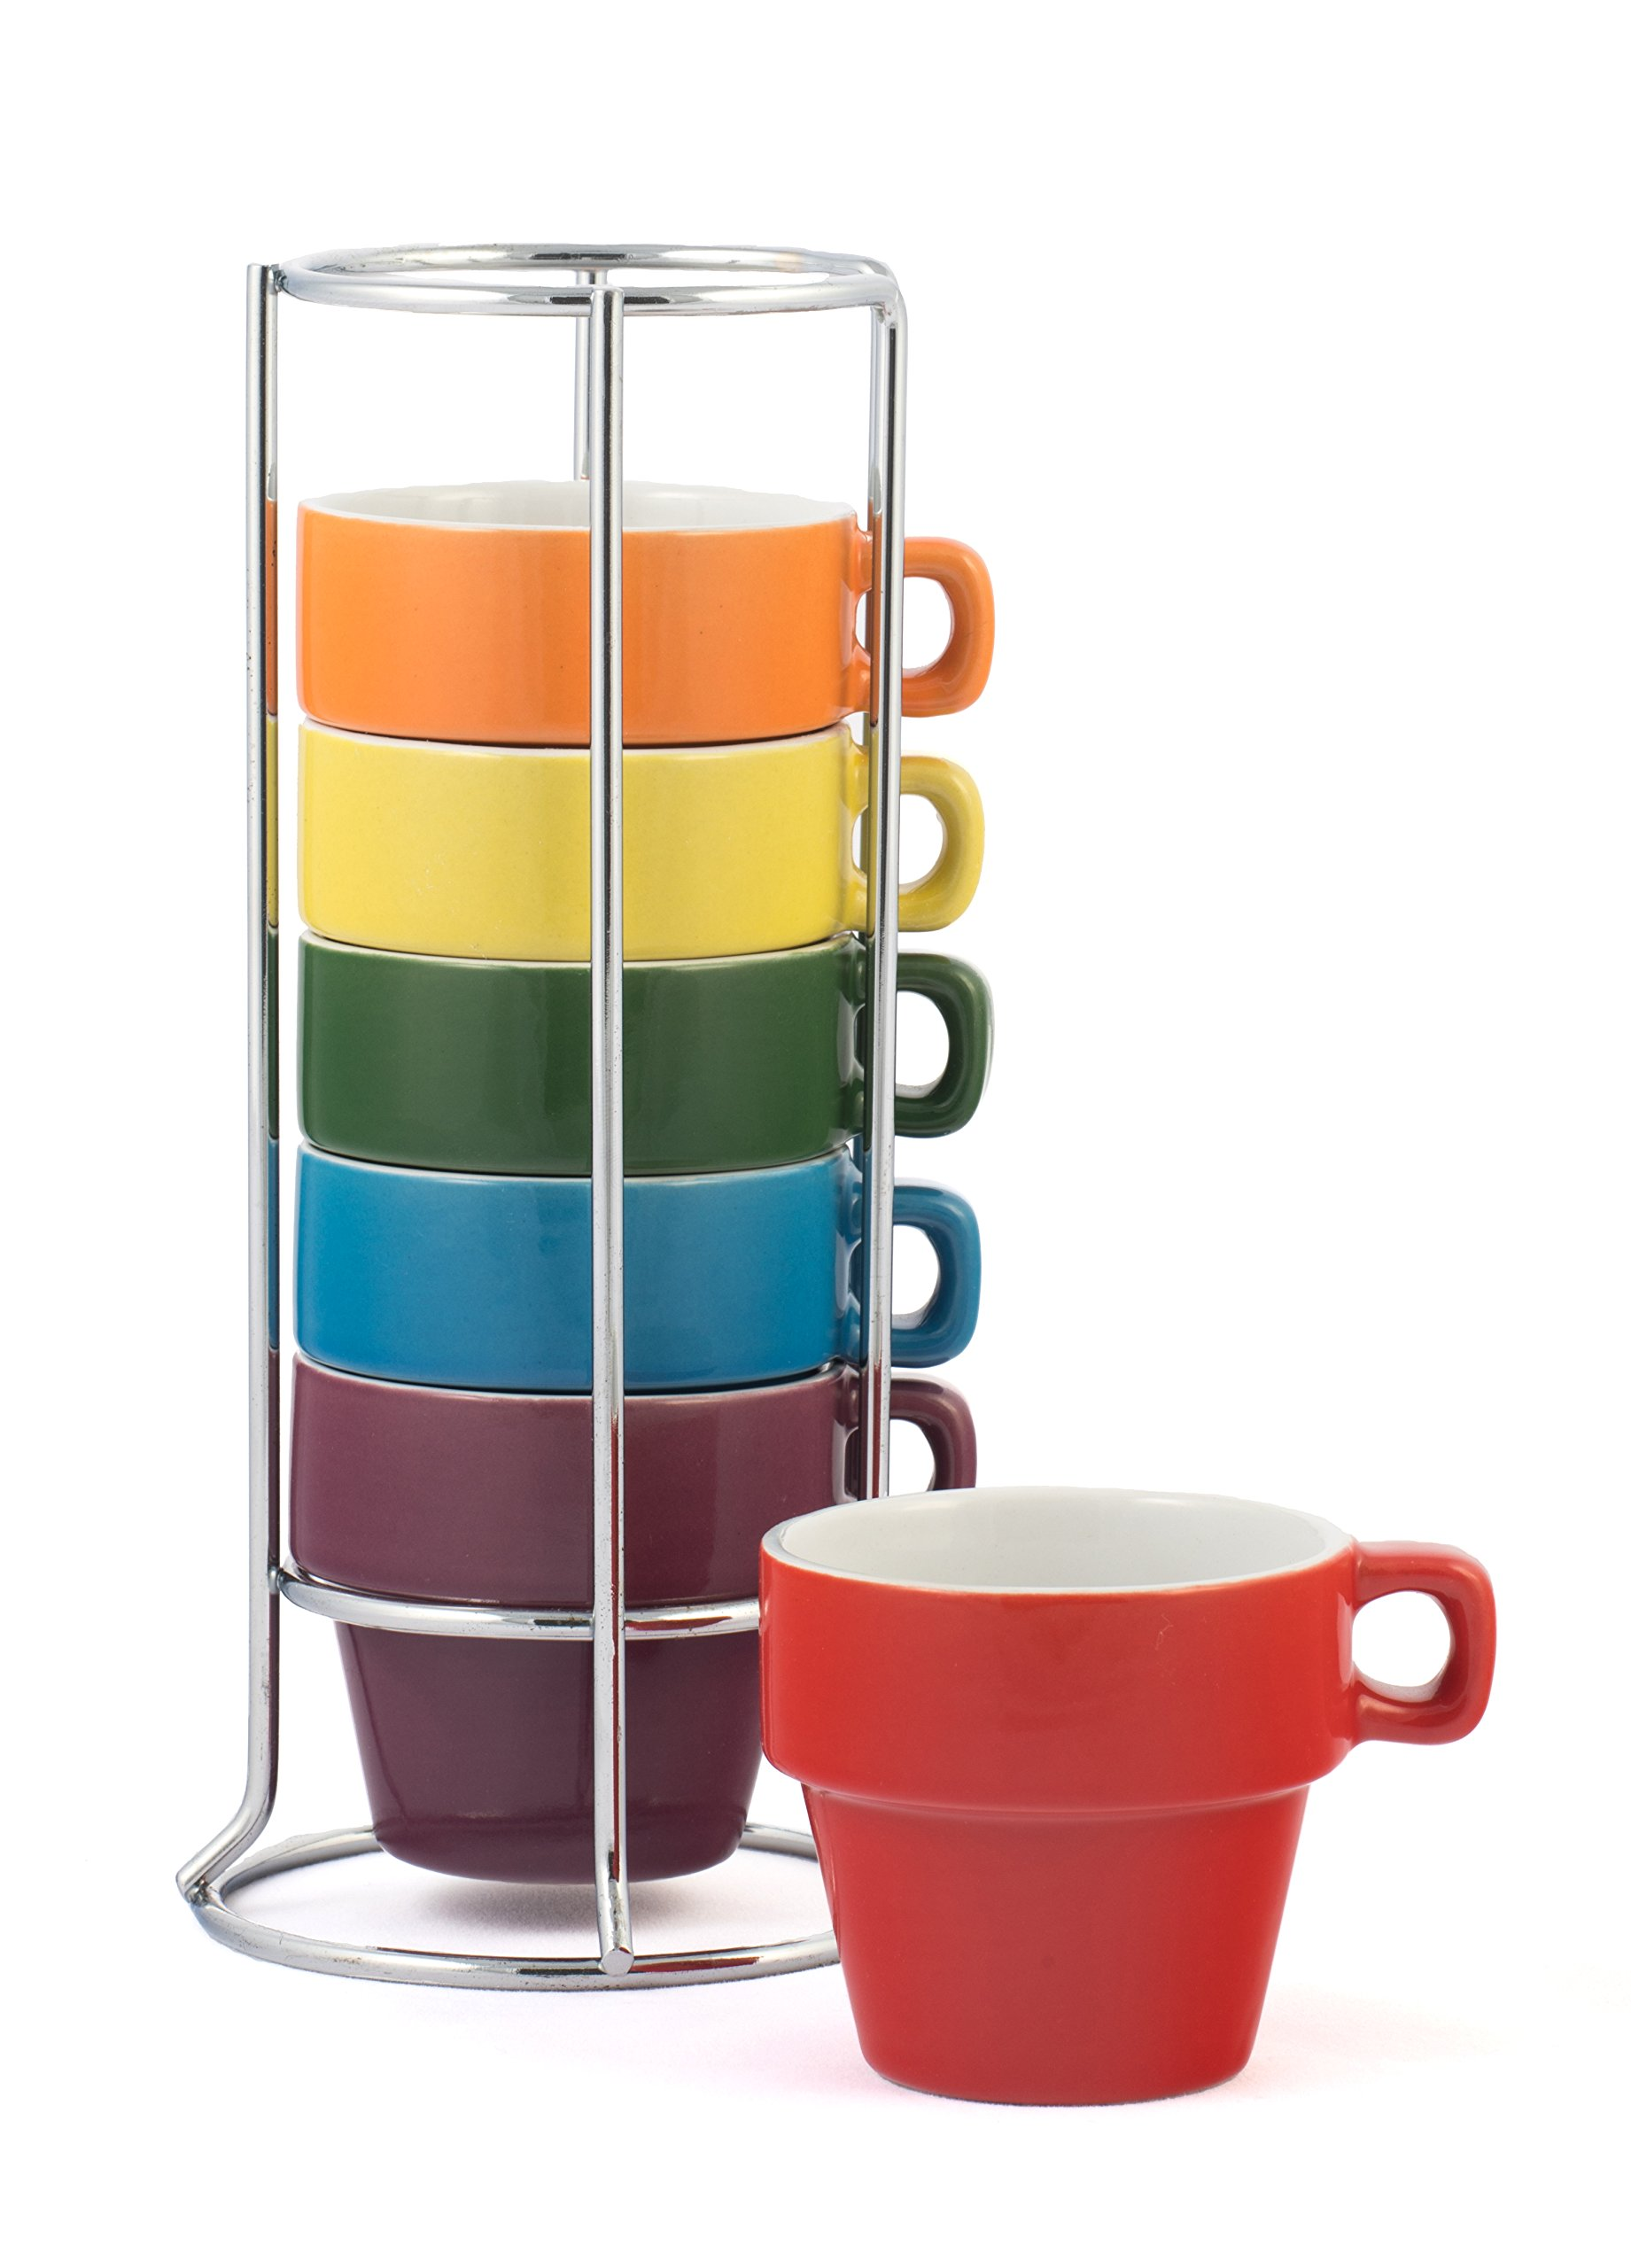 Gypsy Color Ceramic Espresso Mug Set of 6 Small (3 oz.) Stackable Espresso Cups with Chrome Stand, Mulicolor Rainbow Flag Colors